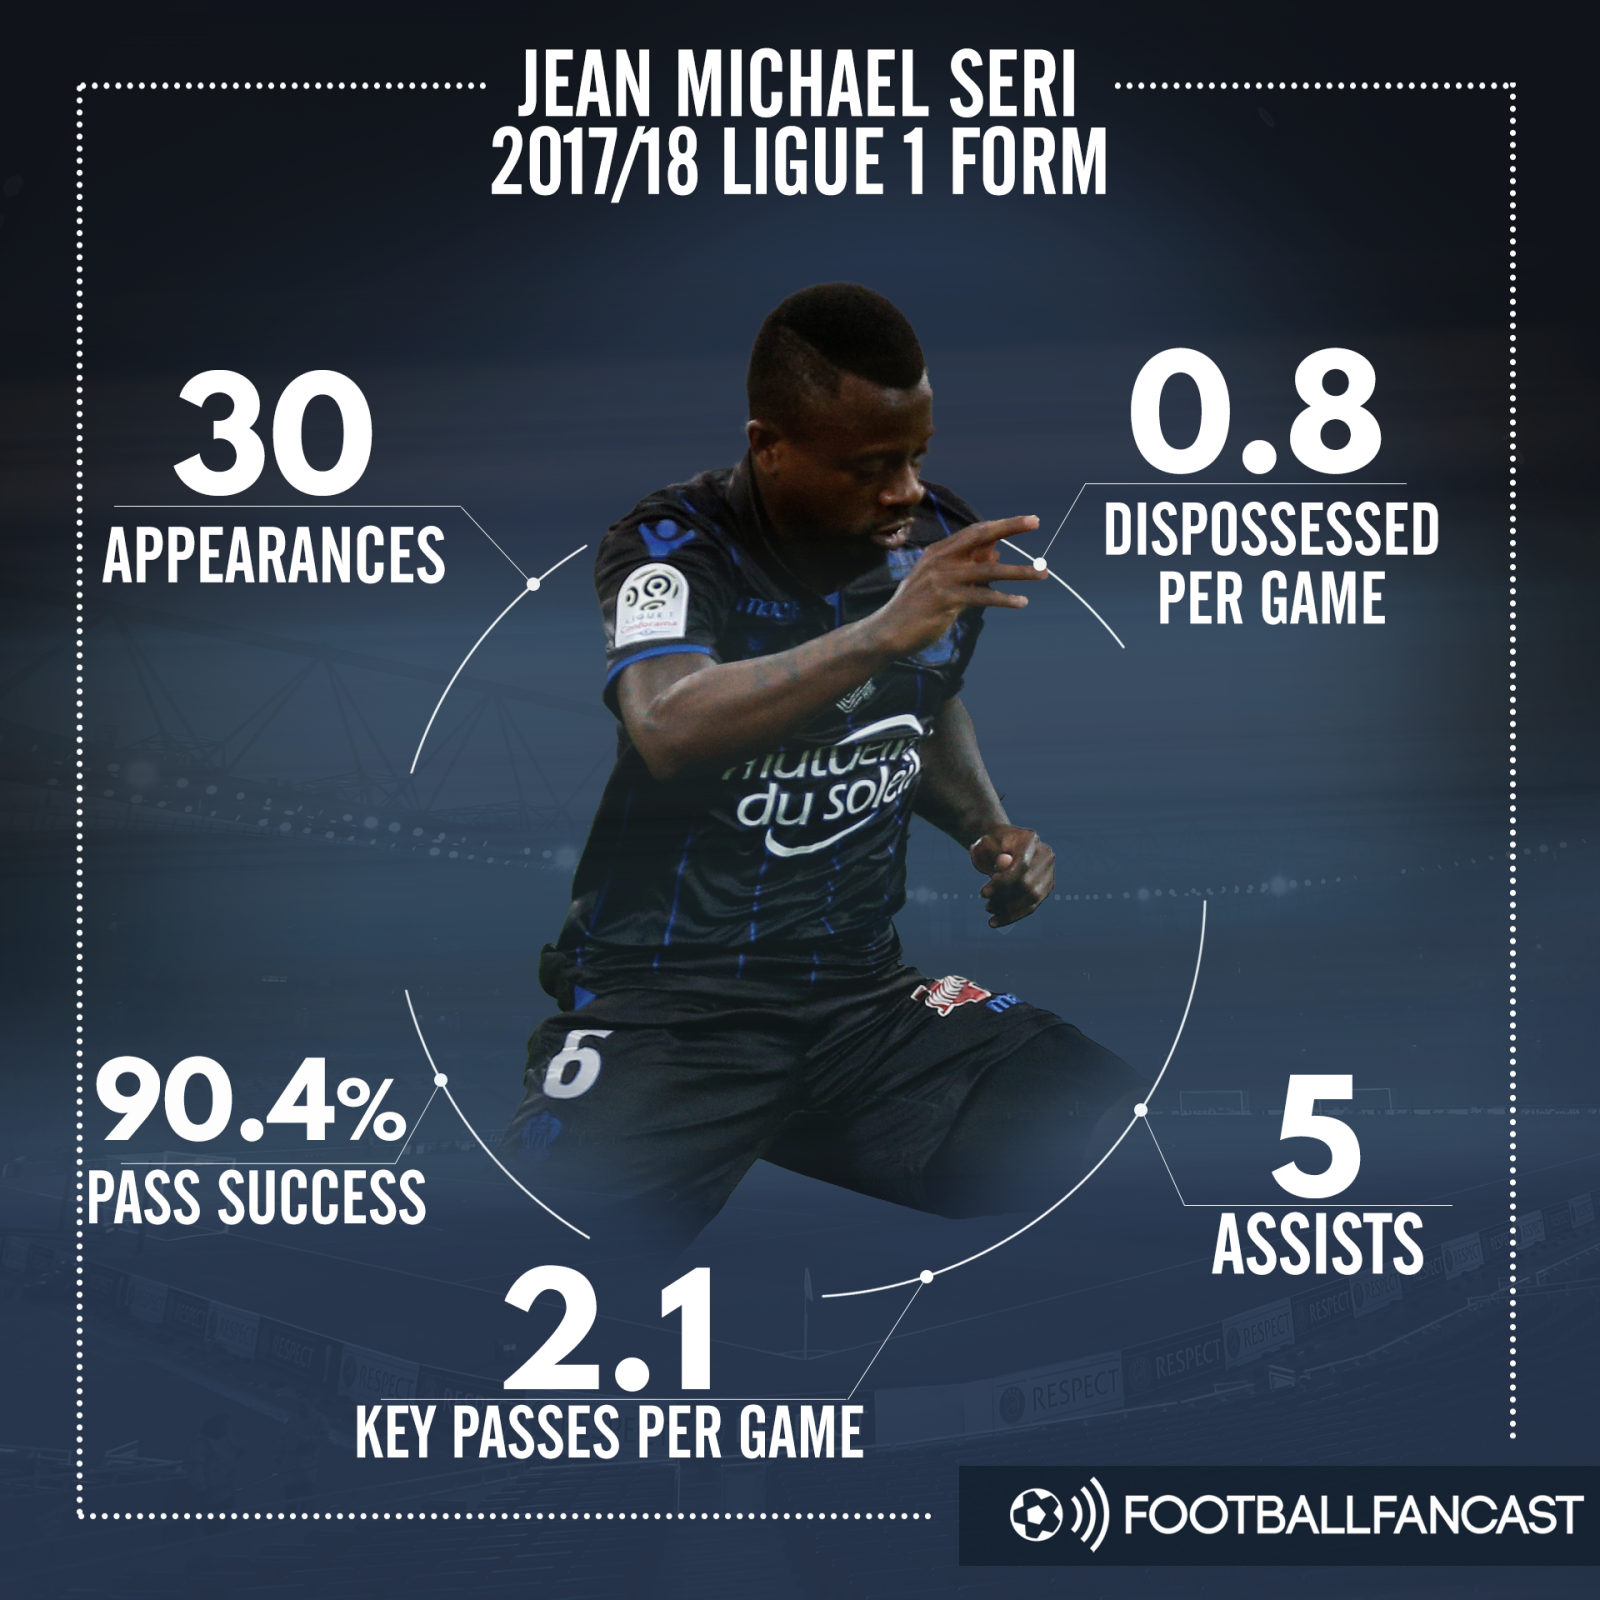 jean michael seri 2017/18 Ligue 1 stats